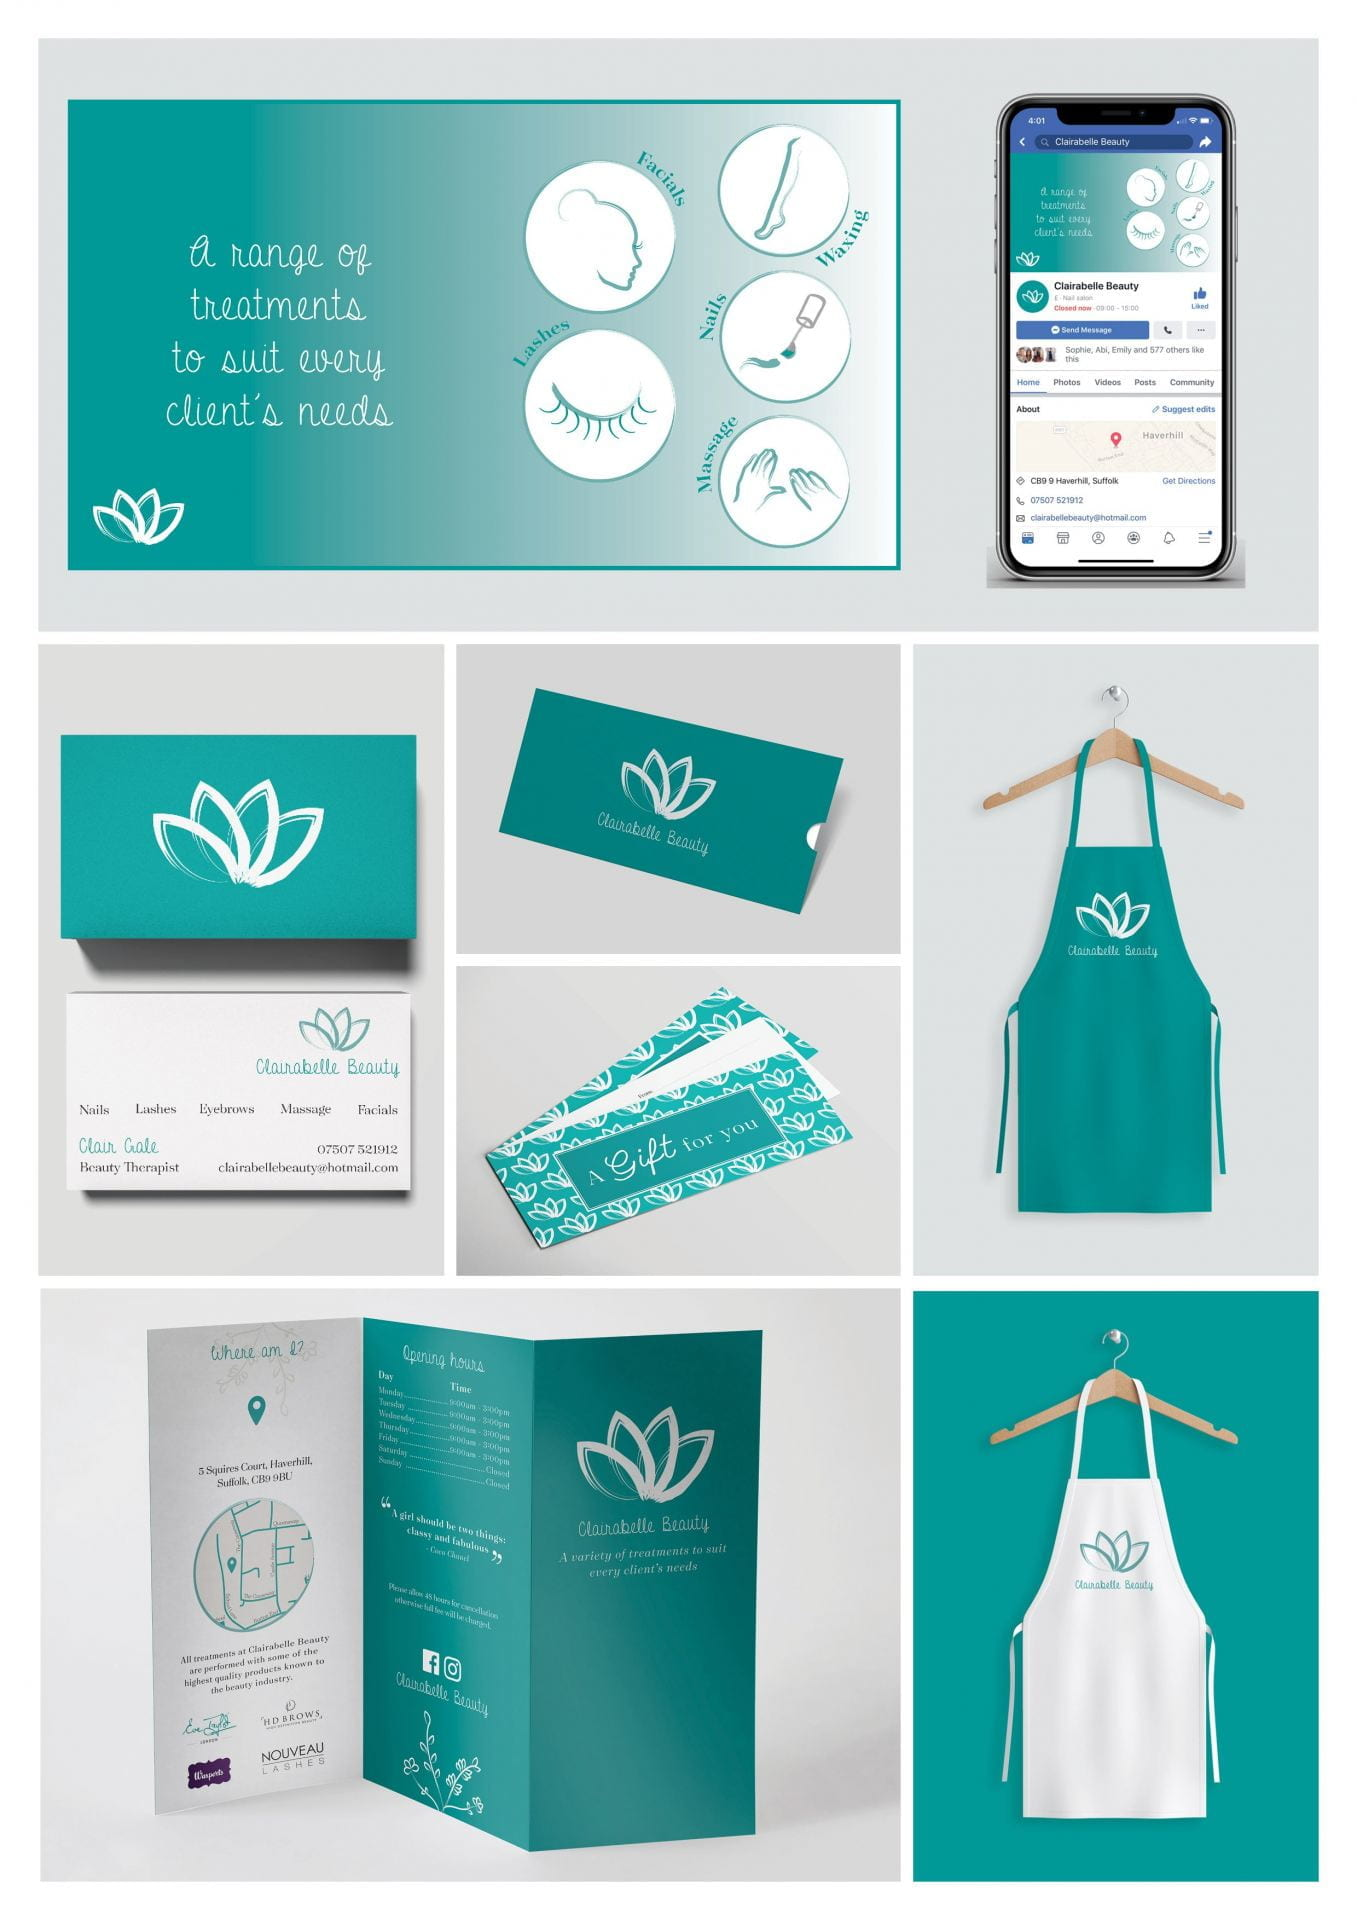 Products such as an apron, an app, and various leaflets, all using a teal and white theme.